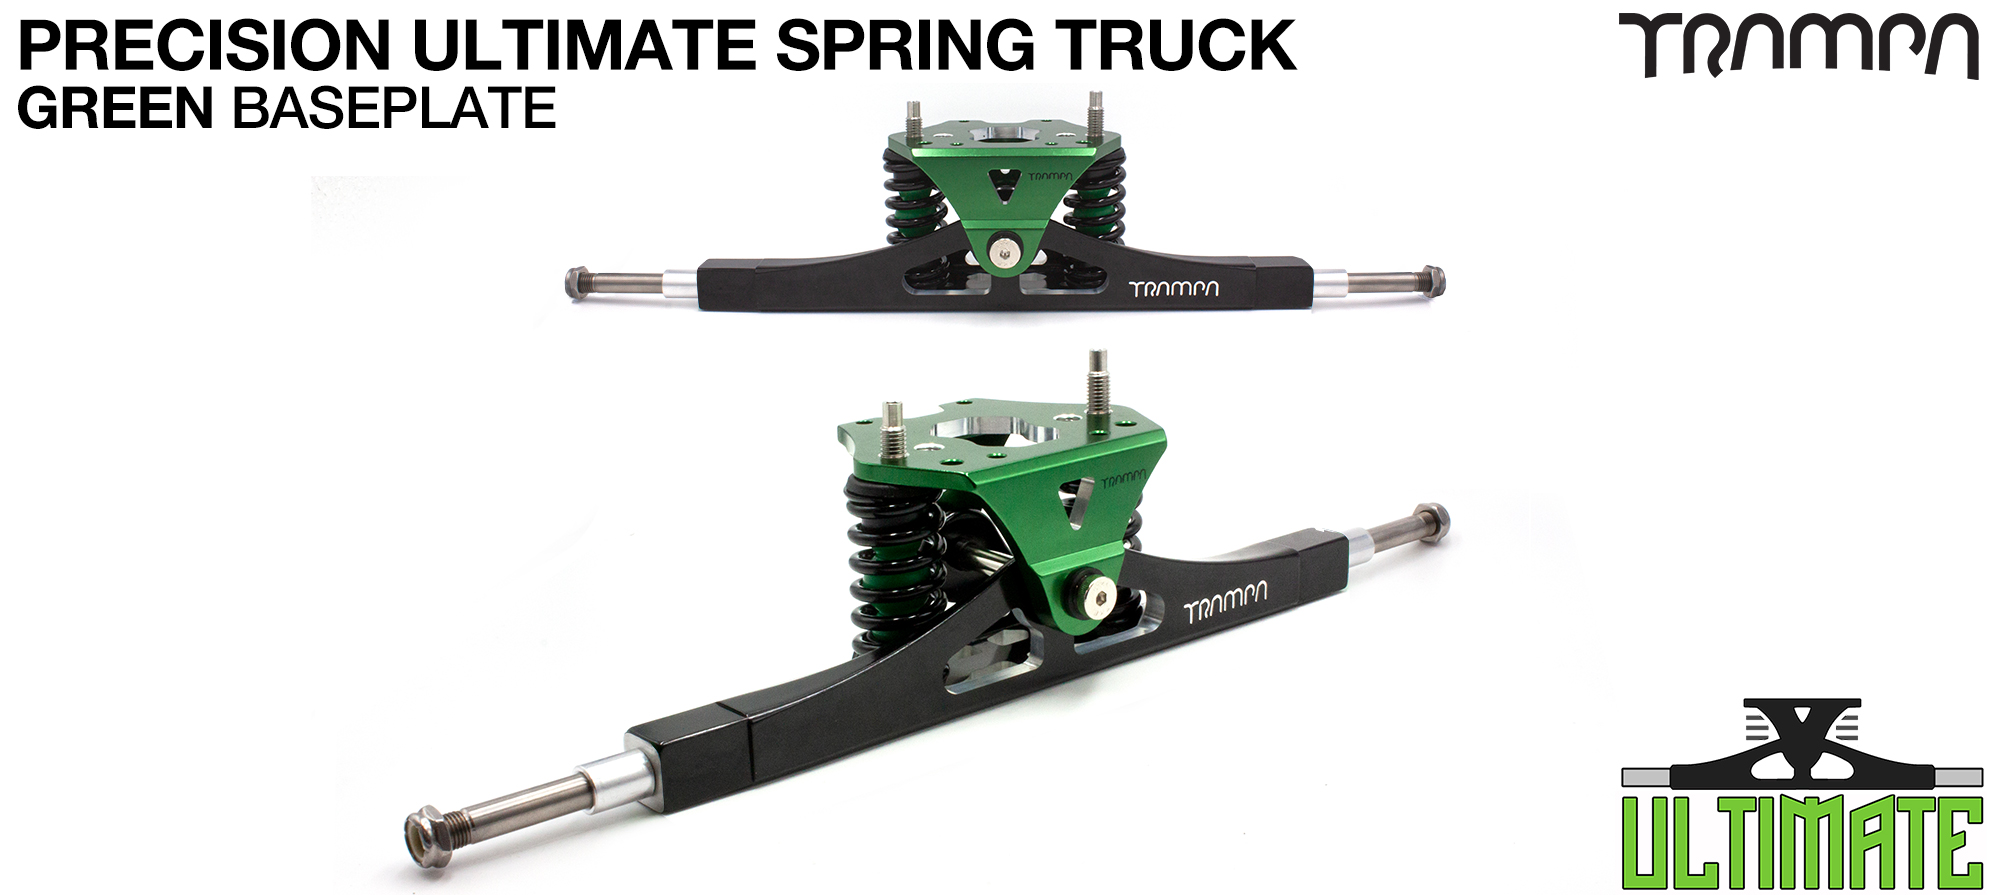 Precision CNC ULTIMATE ATB TRUCK with CNC Motor Mount fixing points, BLUE Baseplate, TITANIUM Axles & Kingpin